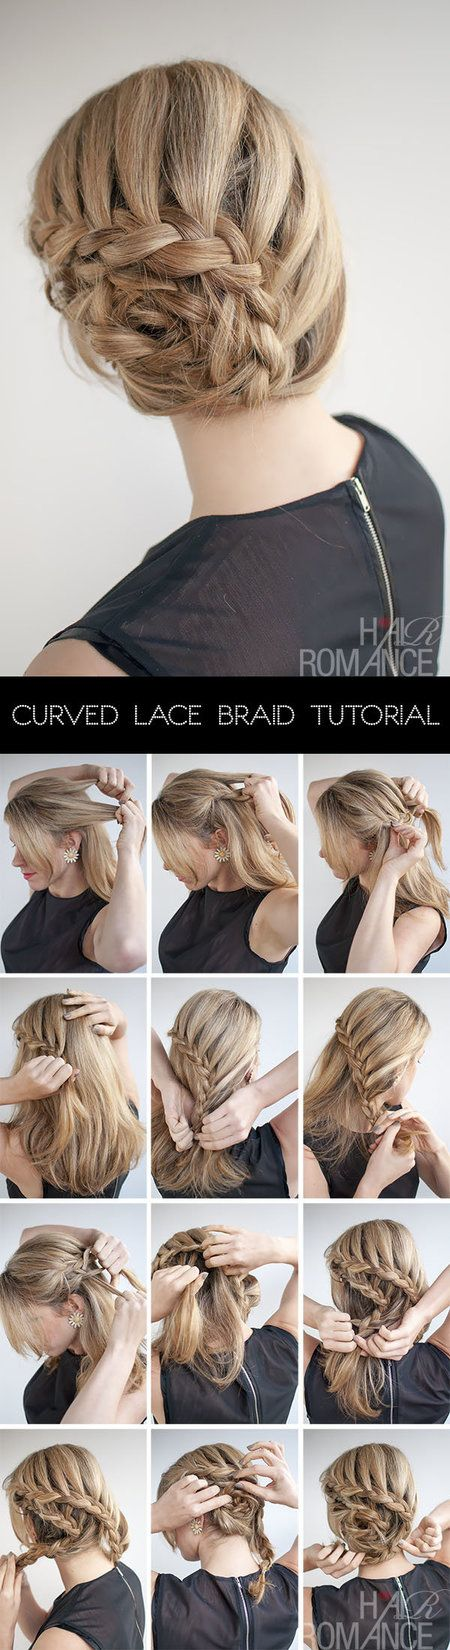 curved lace braid tutorial  #hairstyle  #hairdo #braid - bellashoot.com